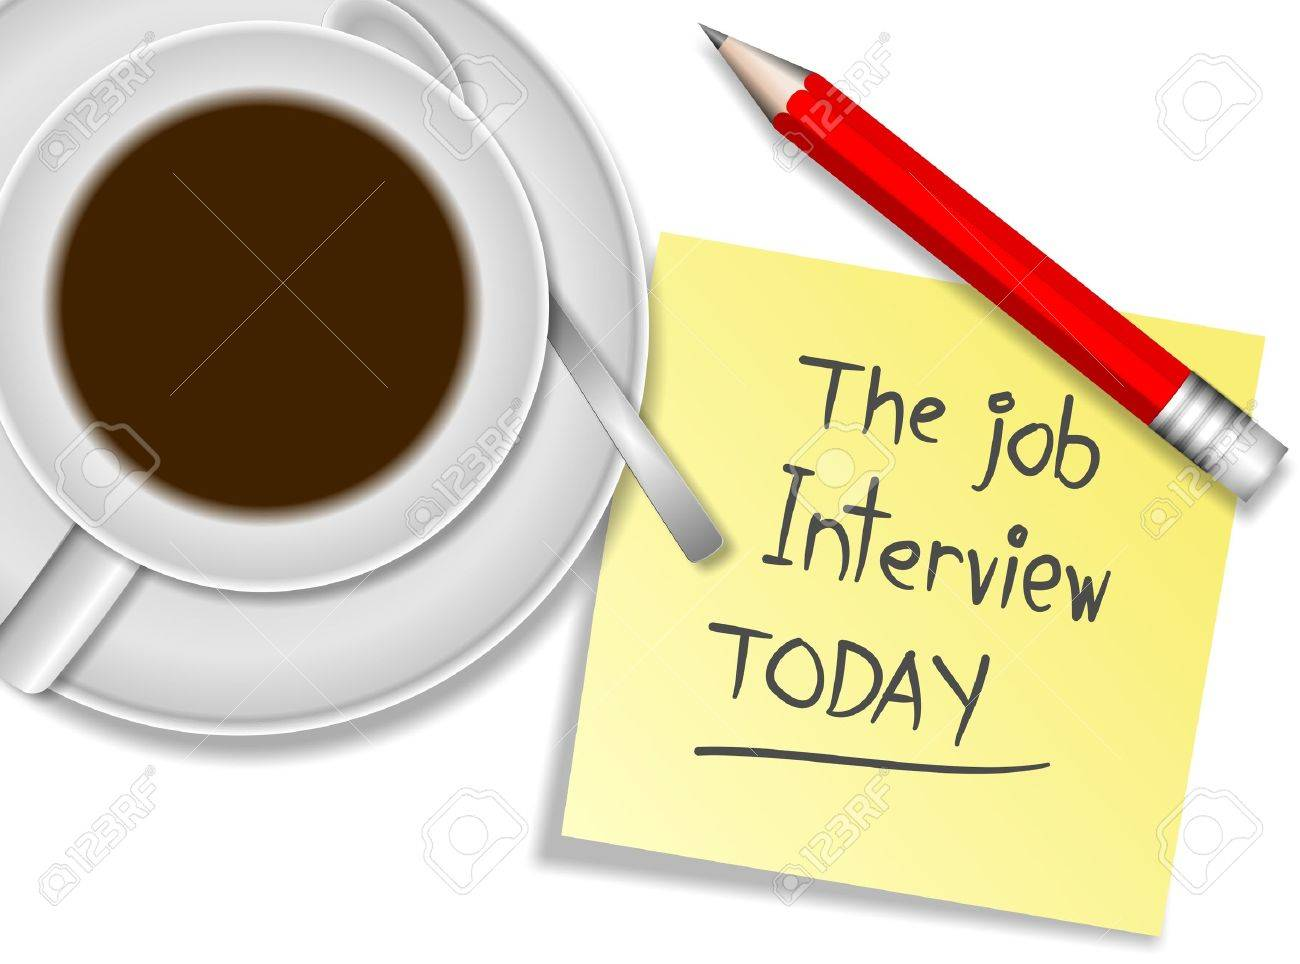 a cup of coffee a pencil and sticky note spelling the job a cup of coffee a pencil and sticky note spelling the job interview today stock